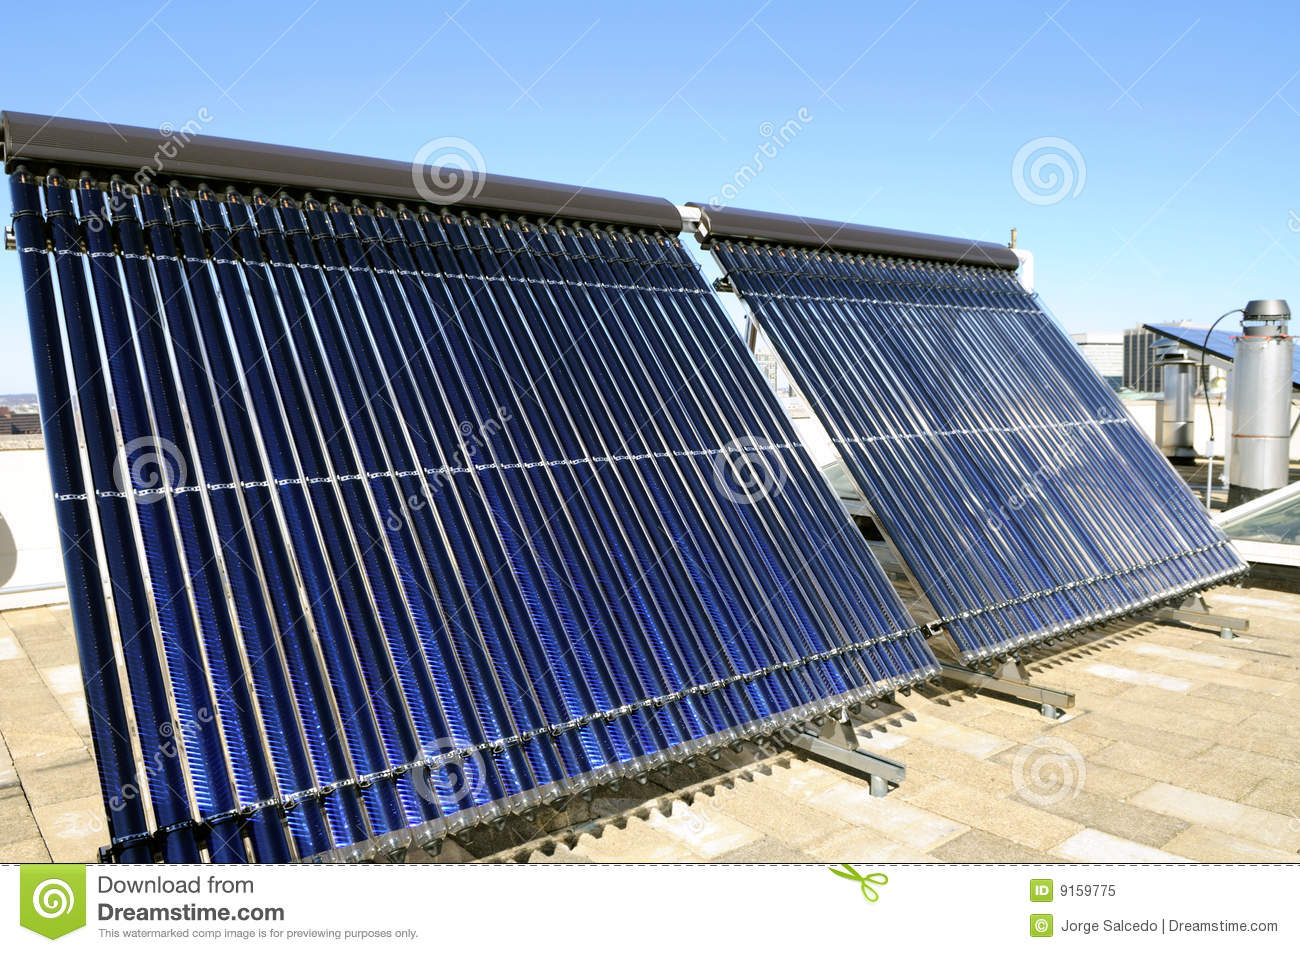 Download Pictures Of Evacted Solar Panels 76